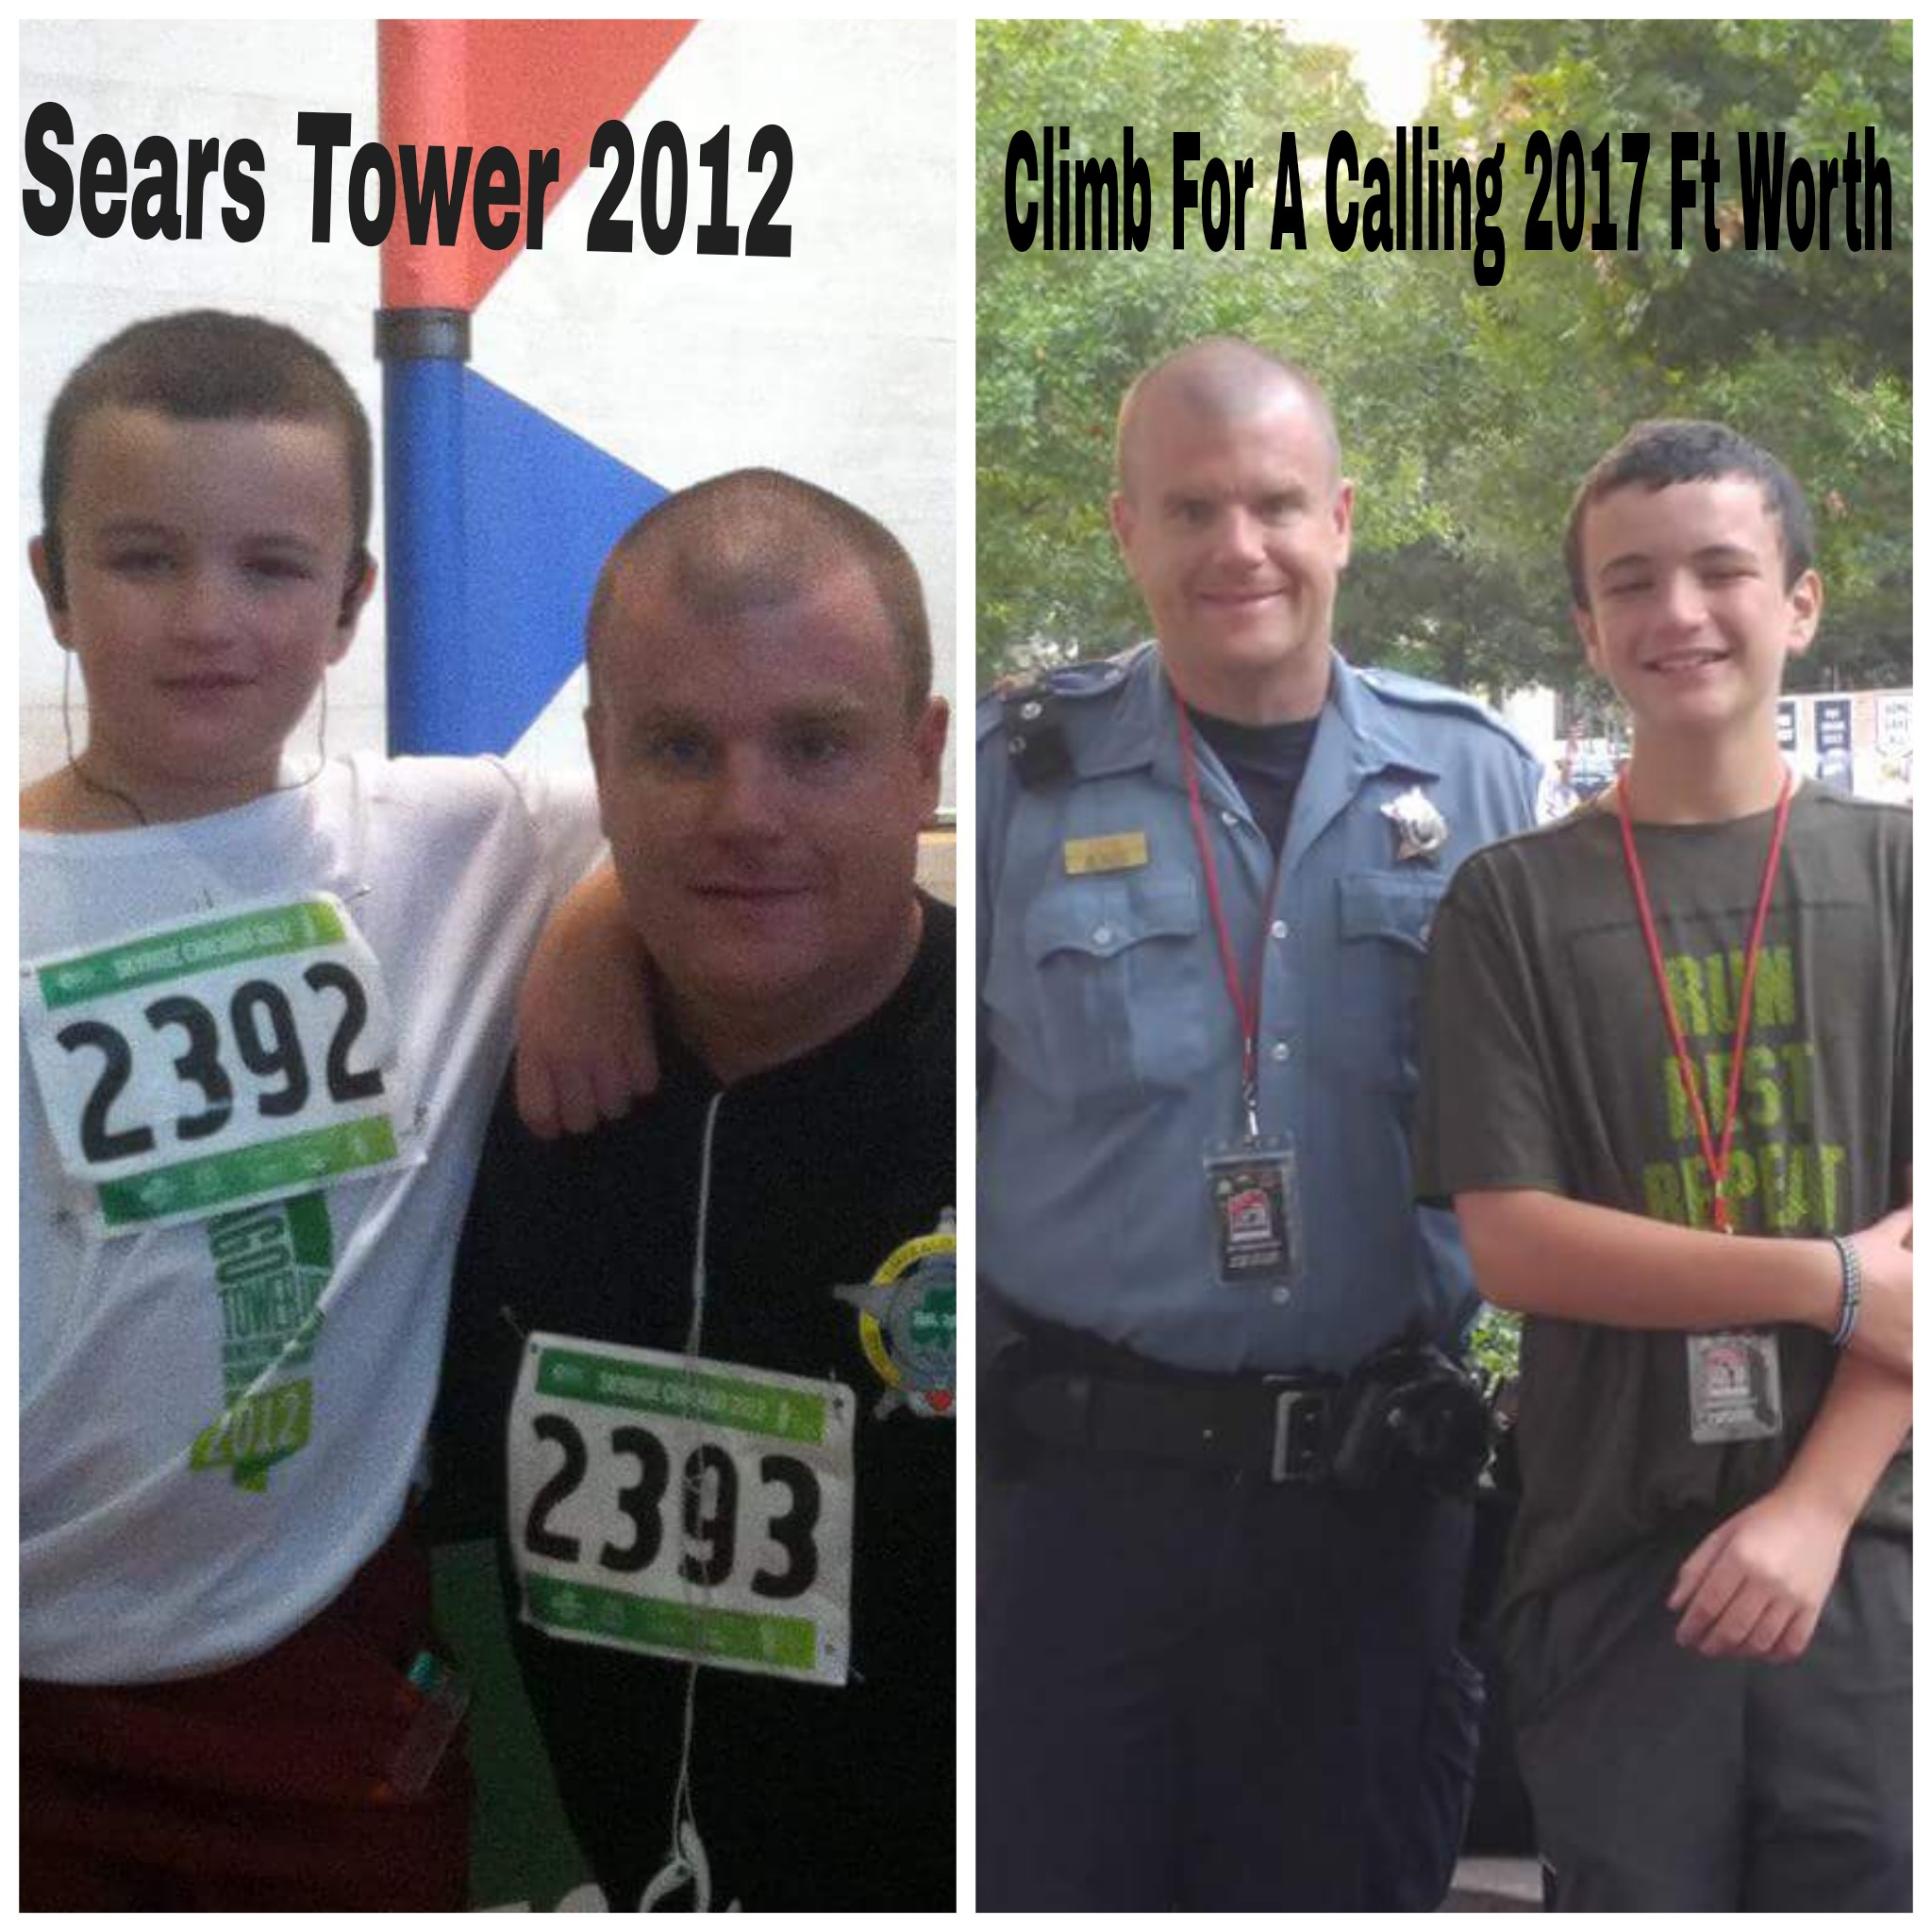 two images of Steve and son before climbing